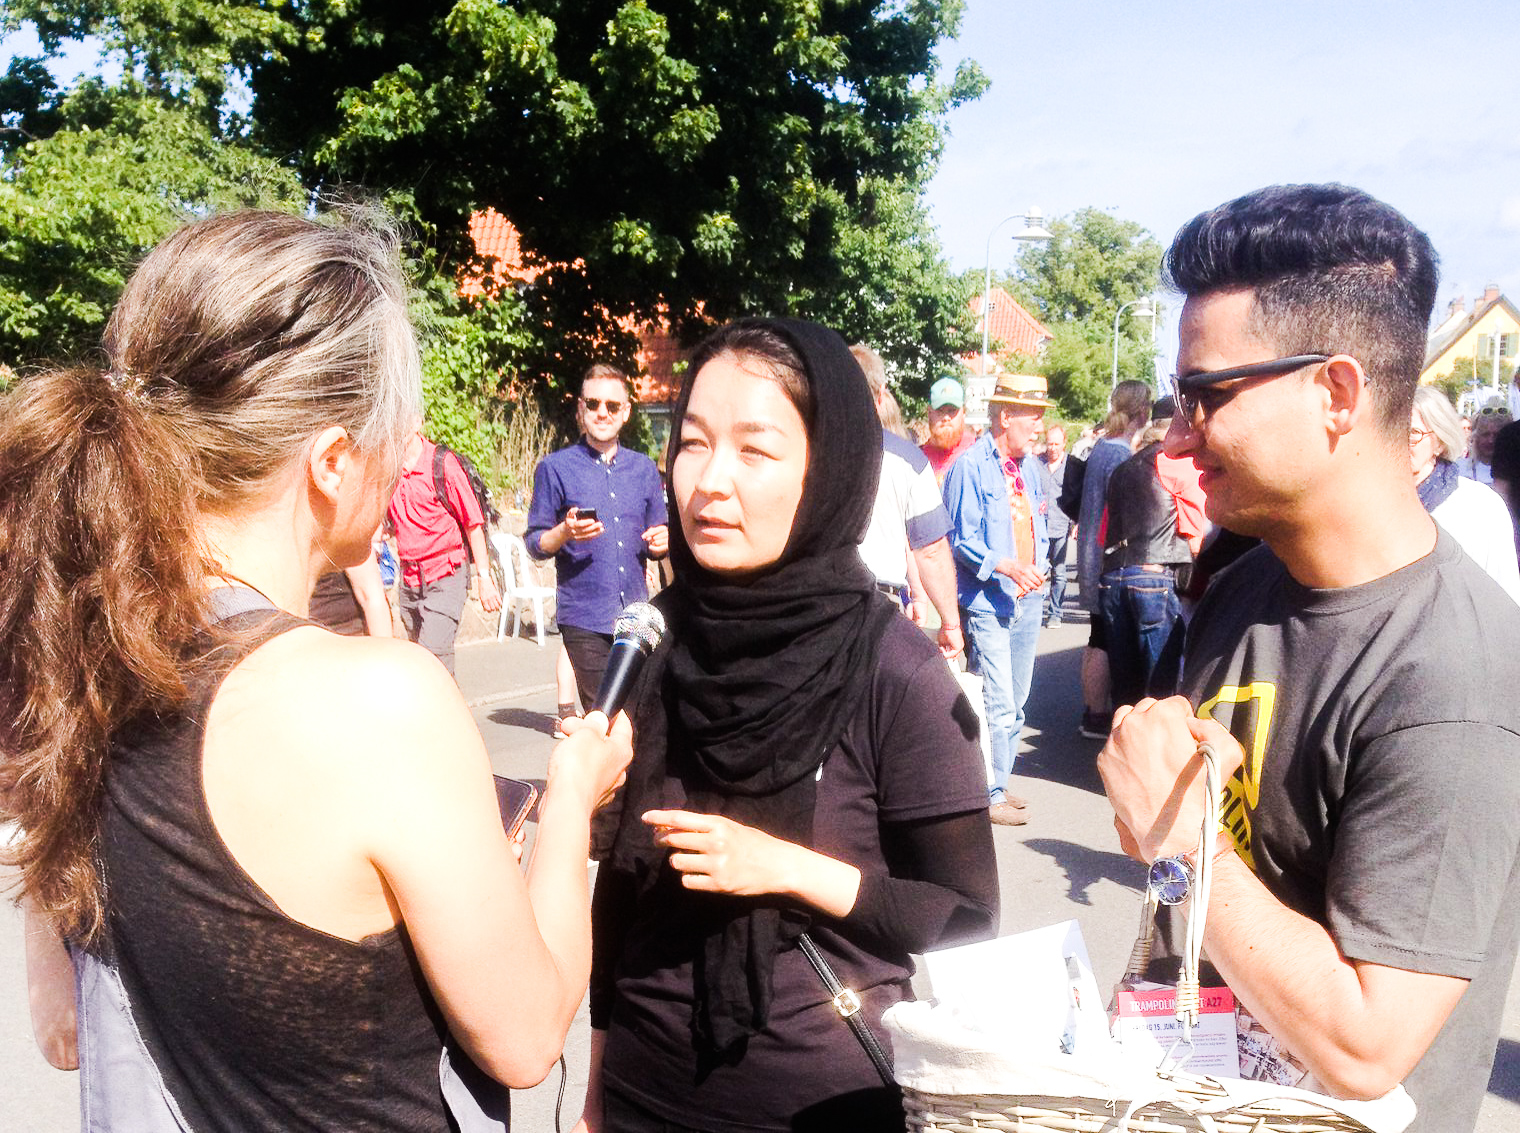 Masoumeh (middle) told many people about Trampoline House at the People's Meeting in June 2018. Photo: Julie Raun.